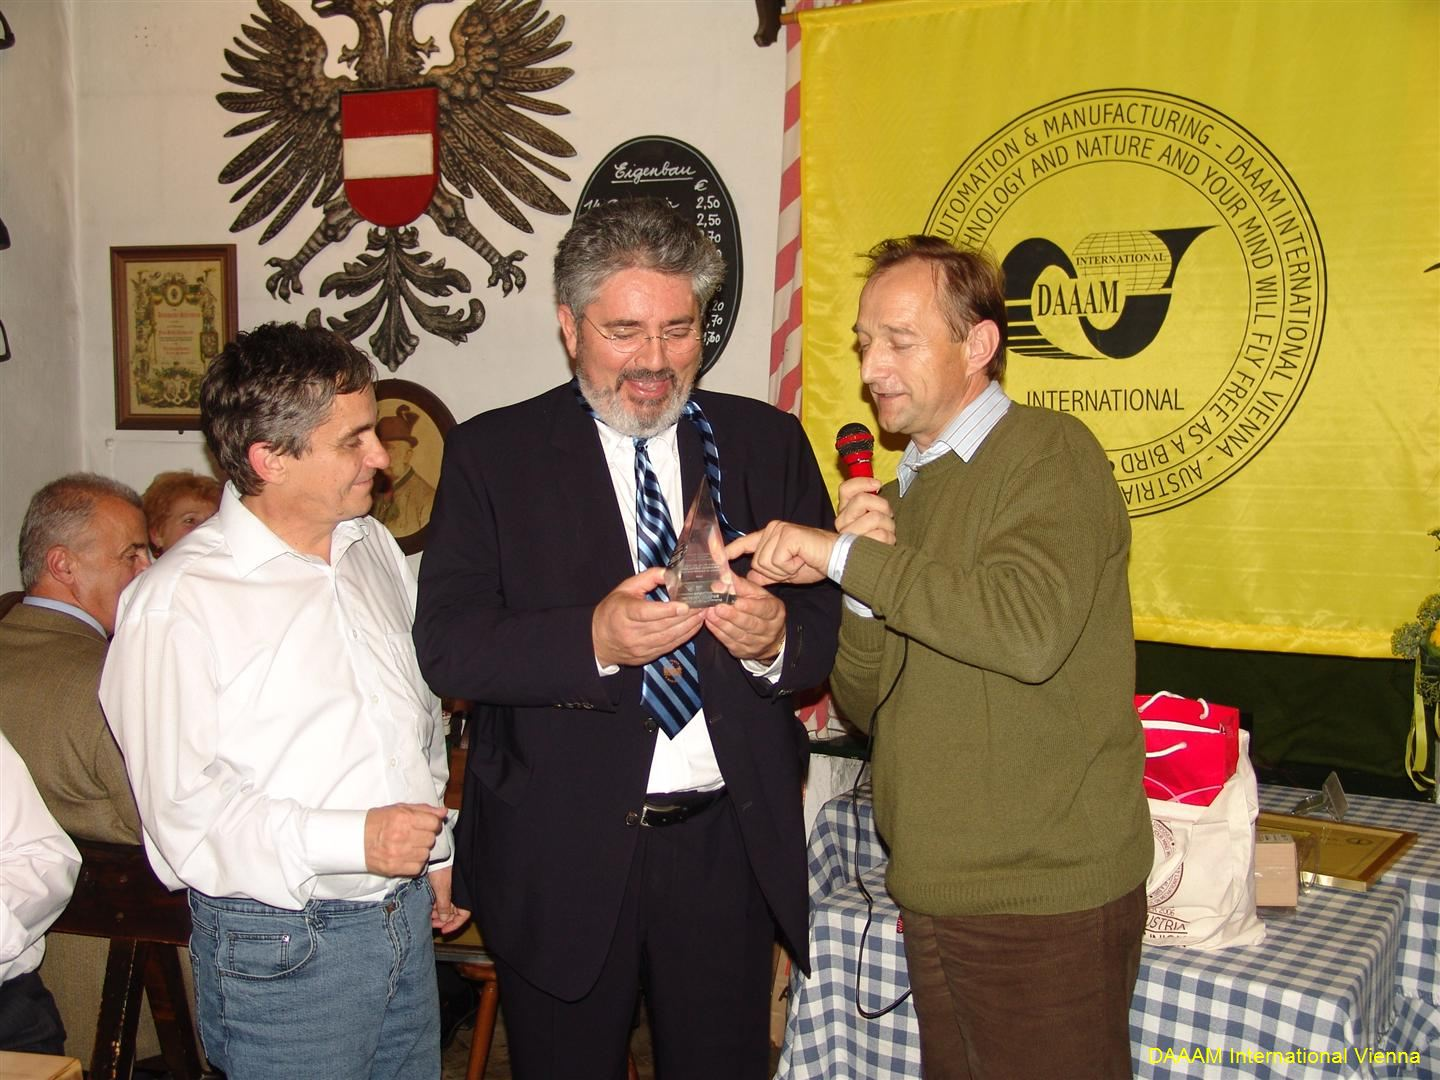 daaam_2006_vienna_dinner_recognitions_lectures_074